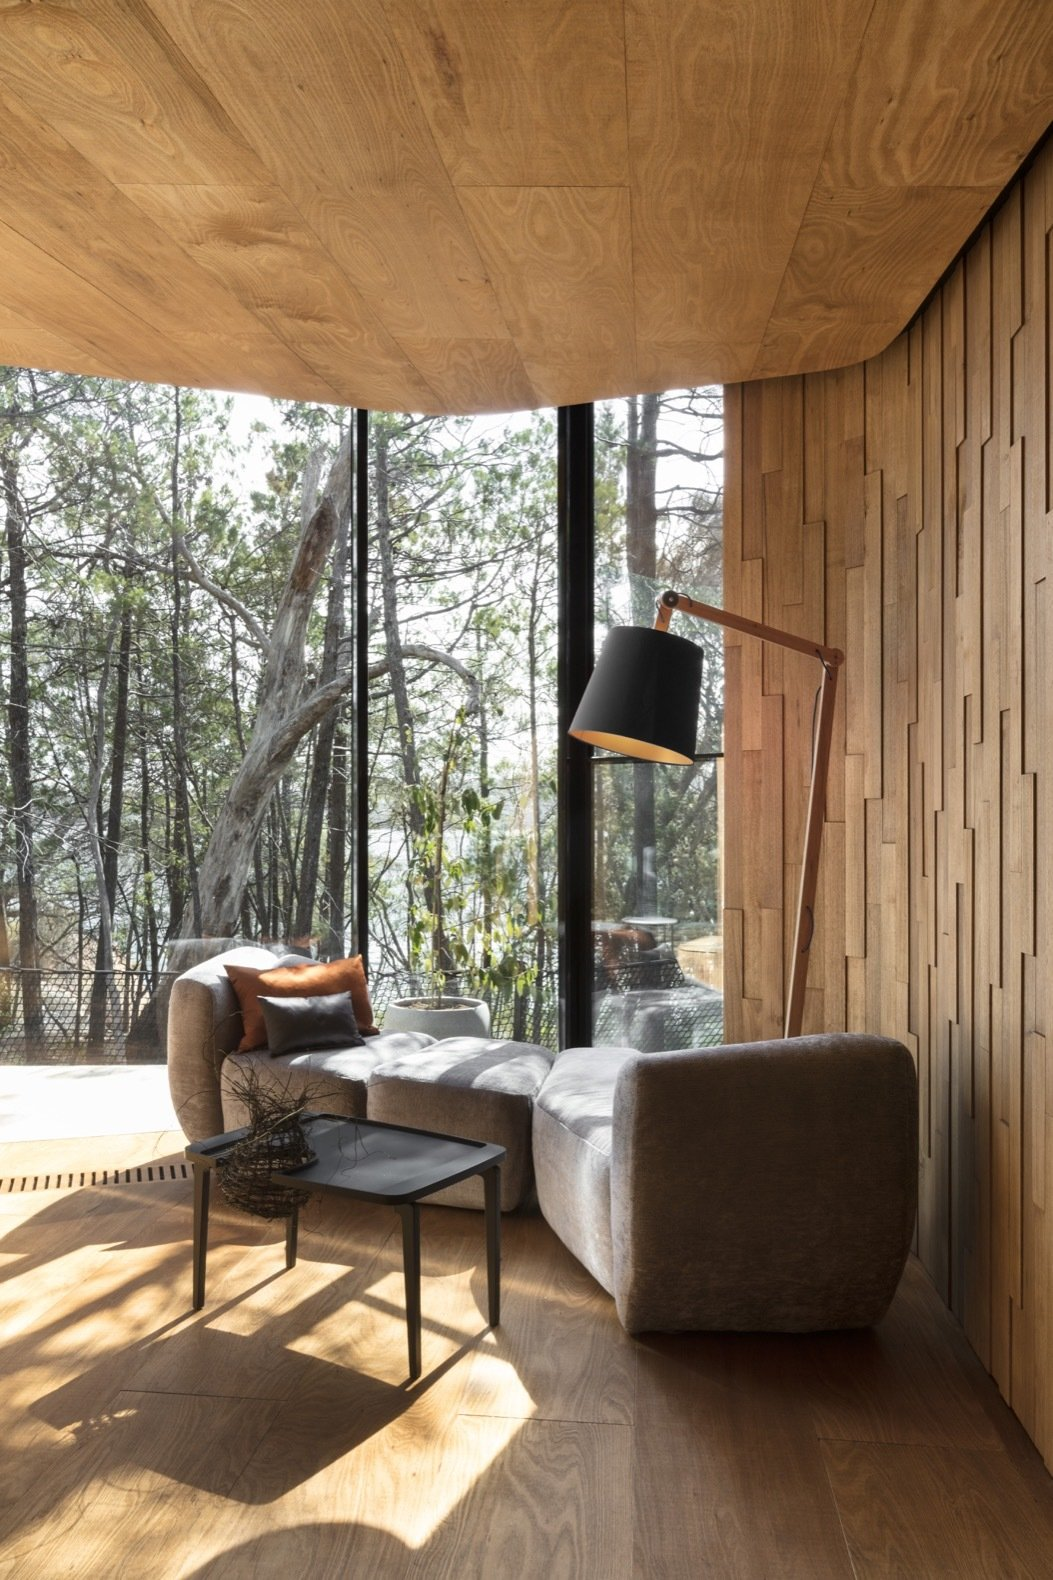 Living Room, Coffee Tables, Sofa, Light Hardwood Floor, and Floor Lighting The landscape-inspired interior features a simple color palette of grays, oranges, and blues.  Photo 5 of 13 in Escape to the Wilds of Tasmania in These Eco-Minded Pavilions